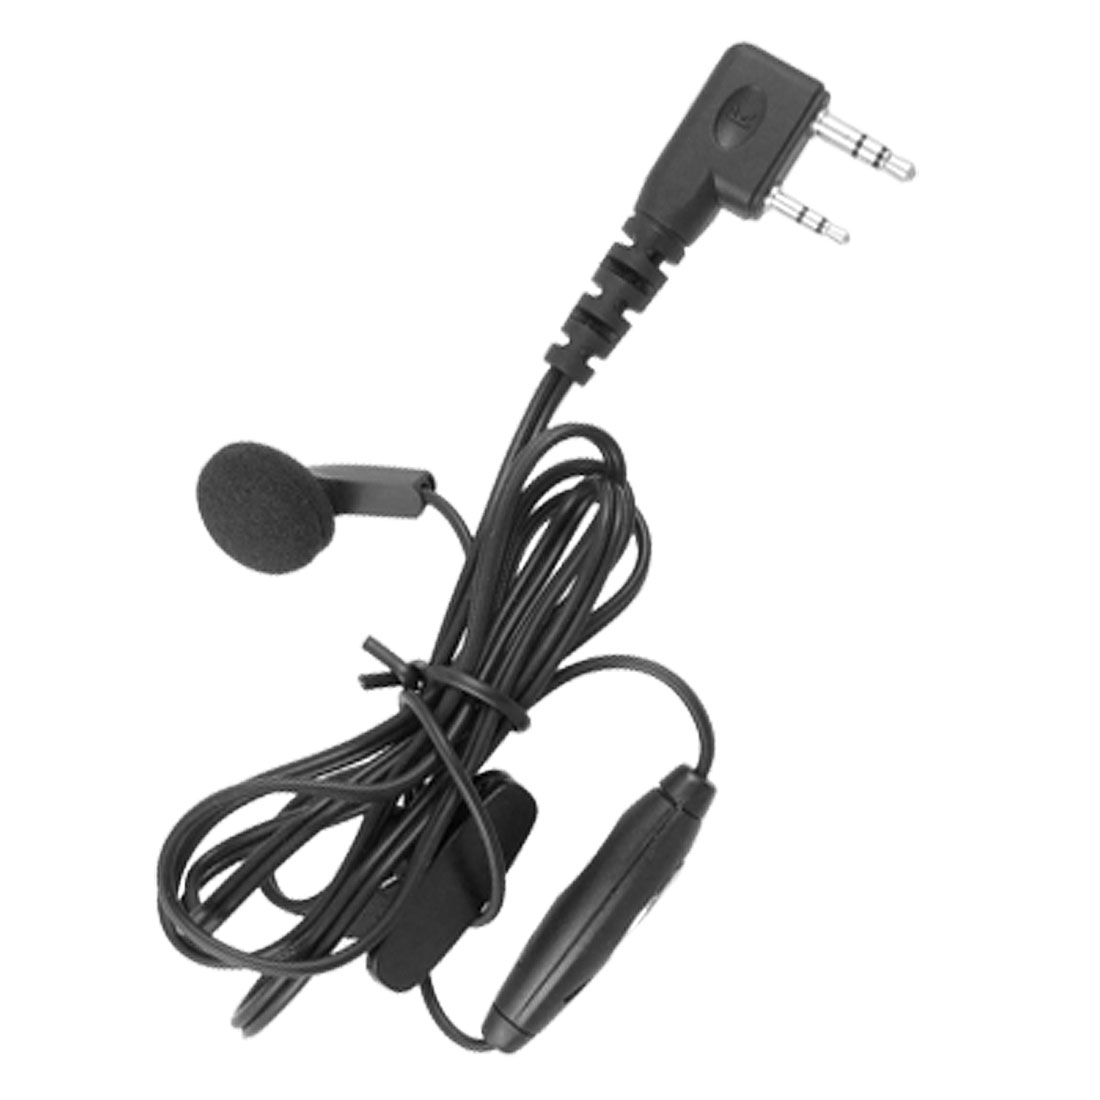 Earbud Earpiece for Kenwood TK3118 TK-3107 TK-3101